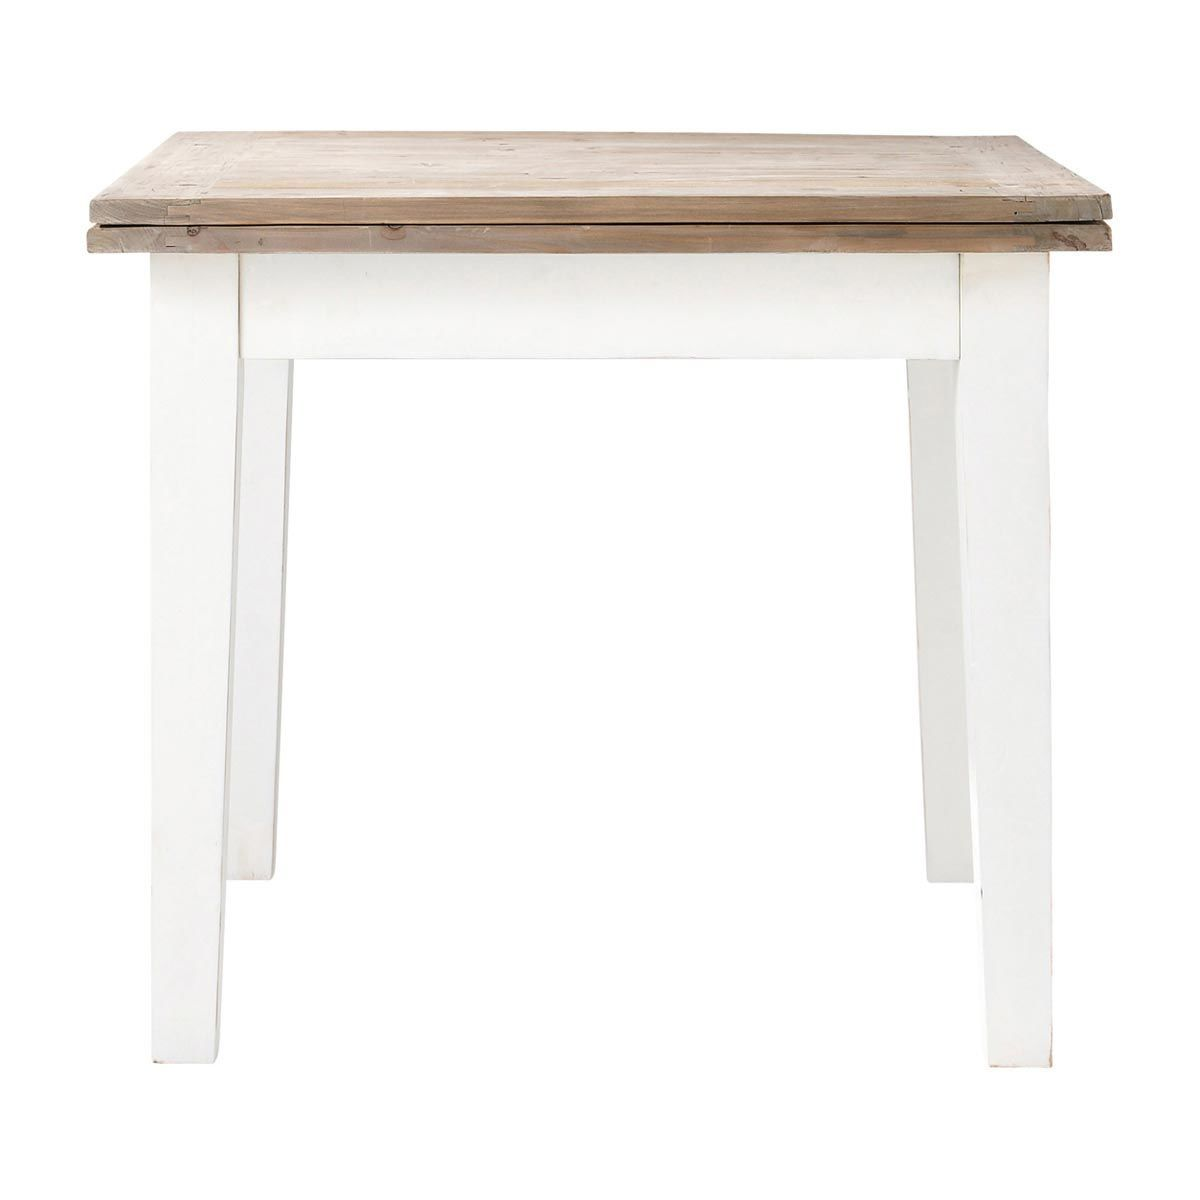 Extendible 4 8 Seater Dining Table Provence Room In